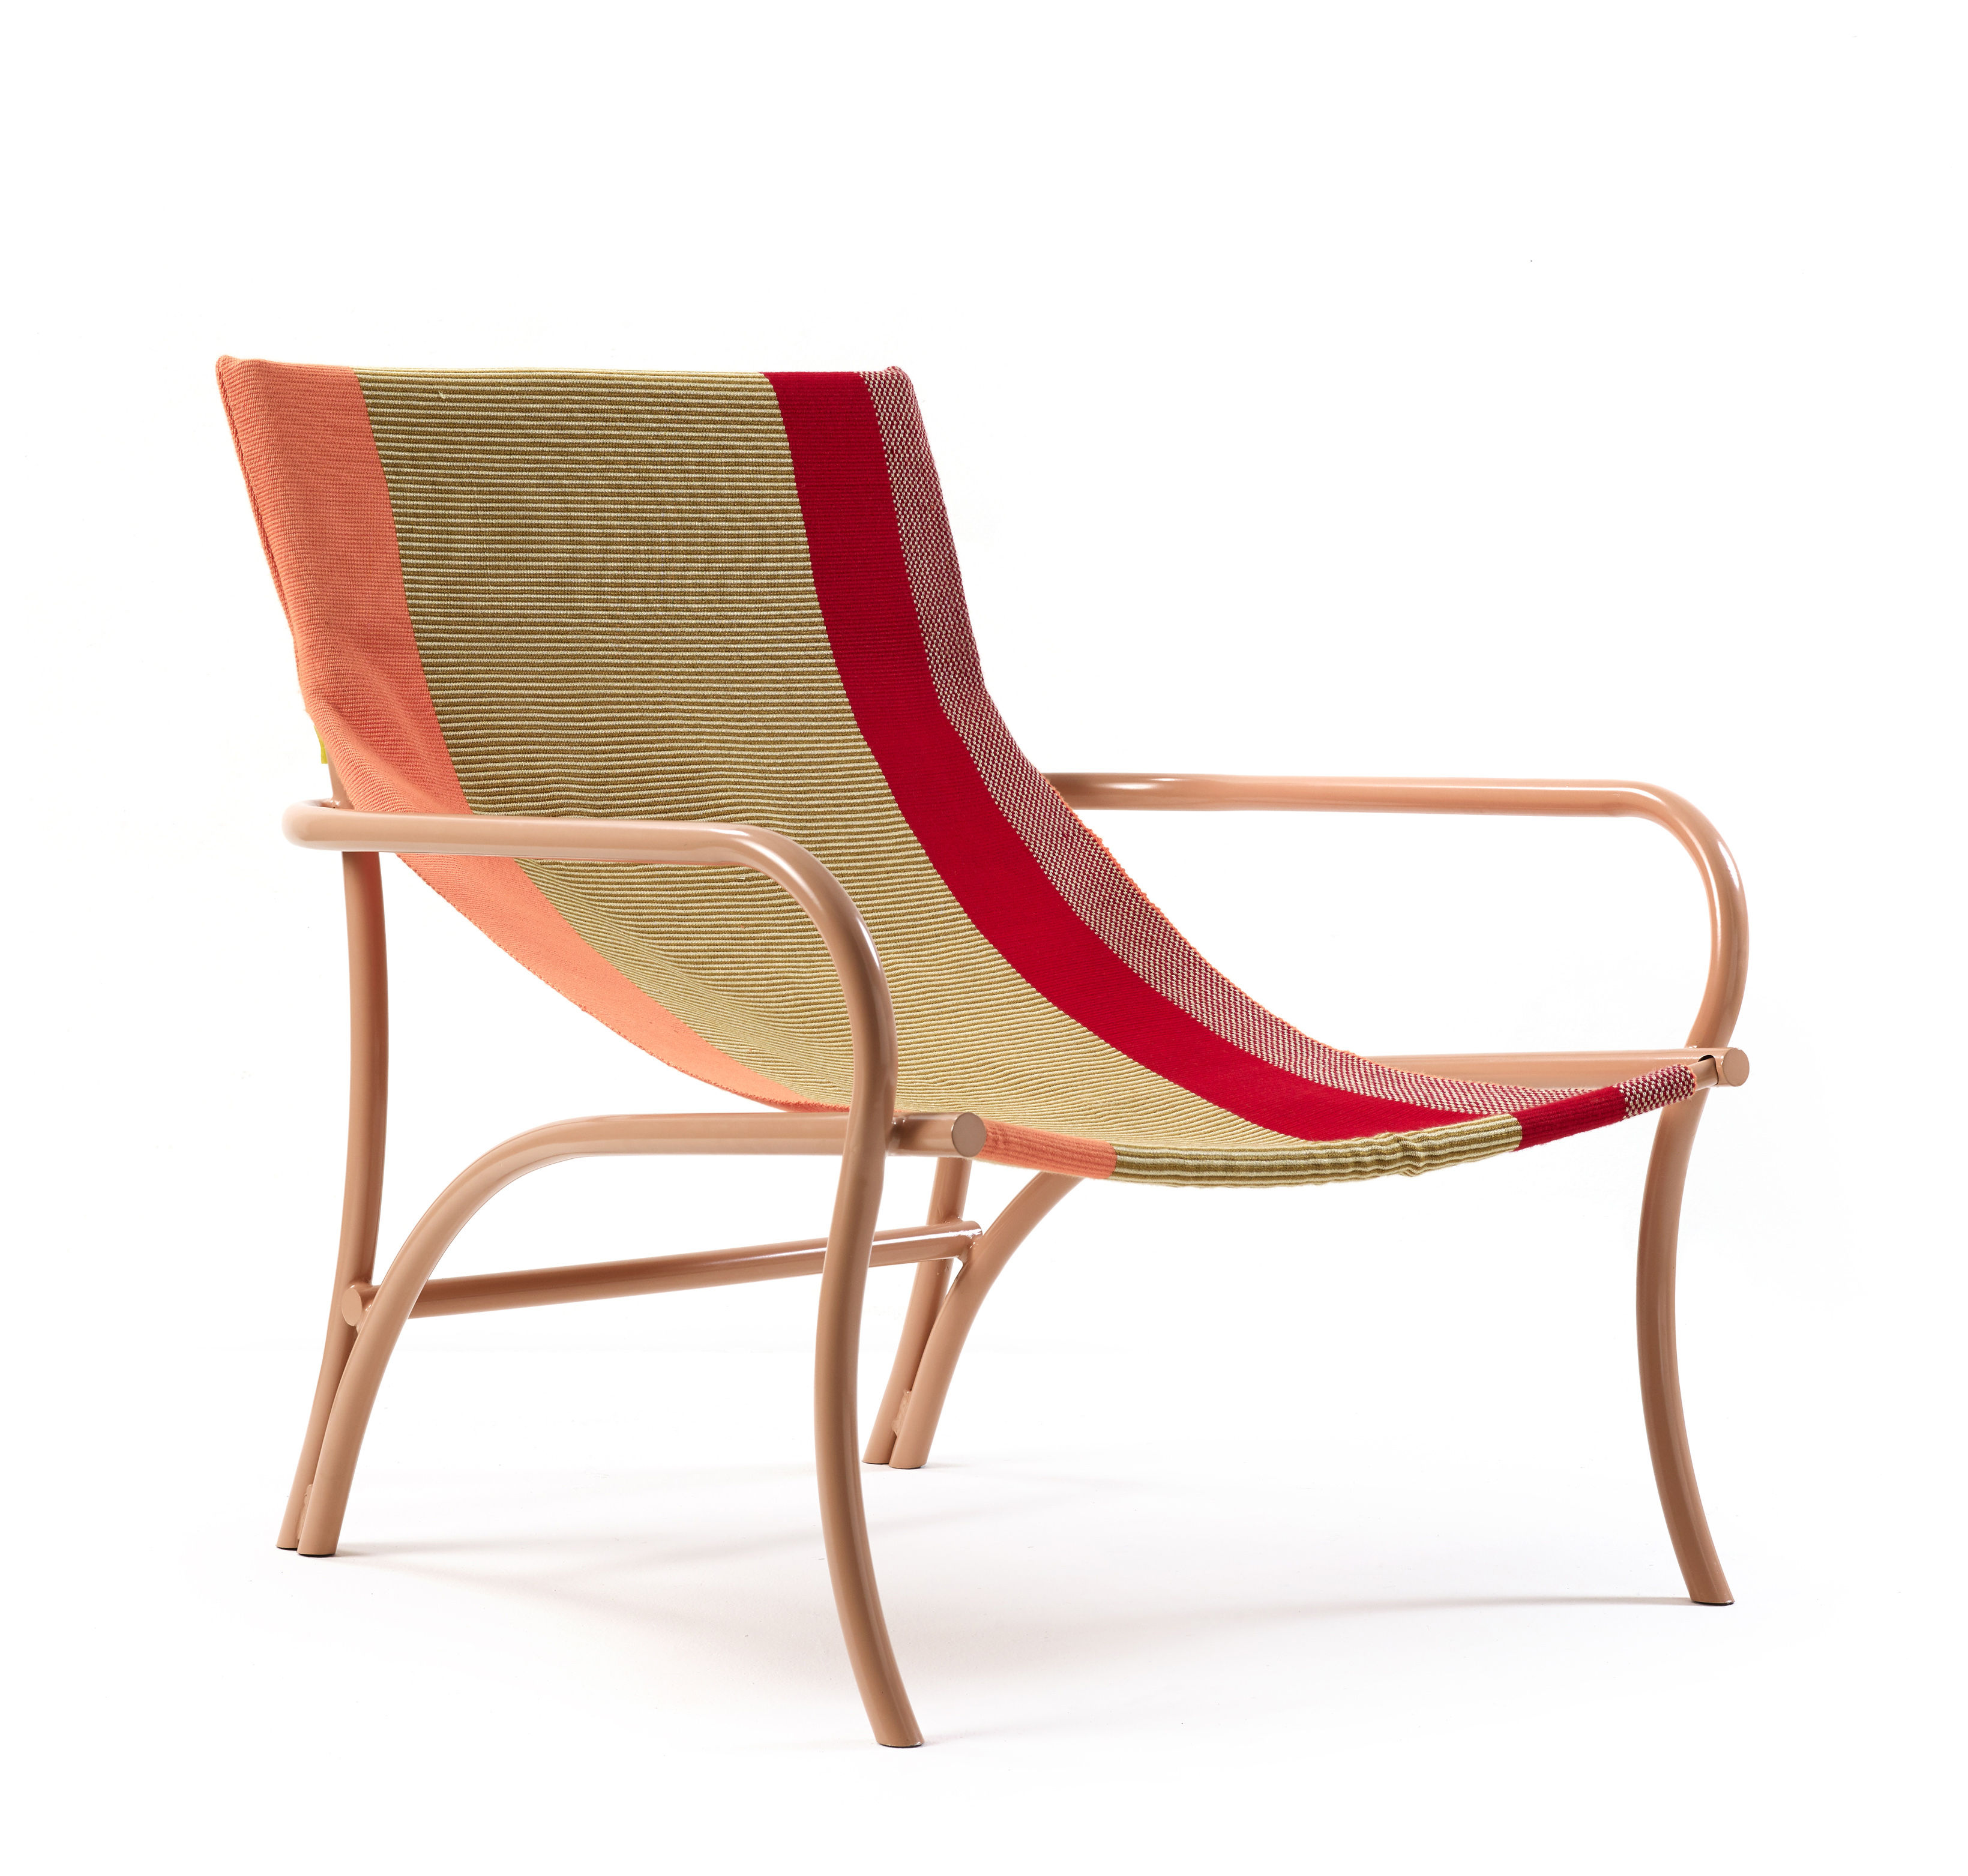 Furniture - Armchairs - Maraca Armchair - / Cotton by ames - Sand & red / Pale pink - Cotton, Lacquered steel